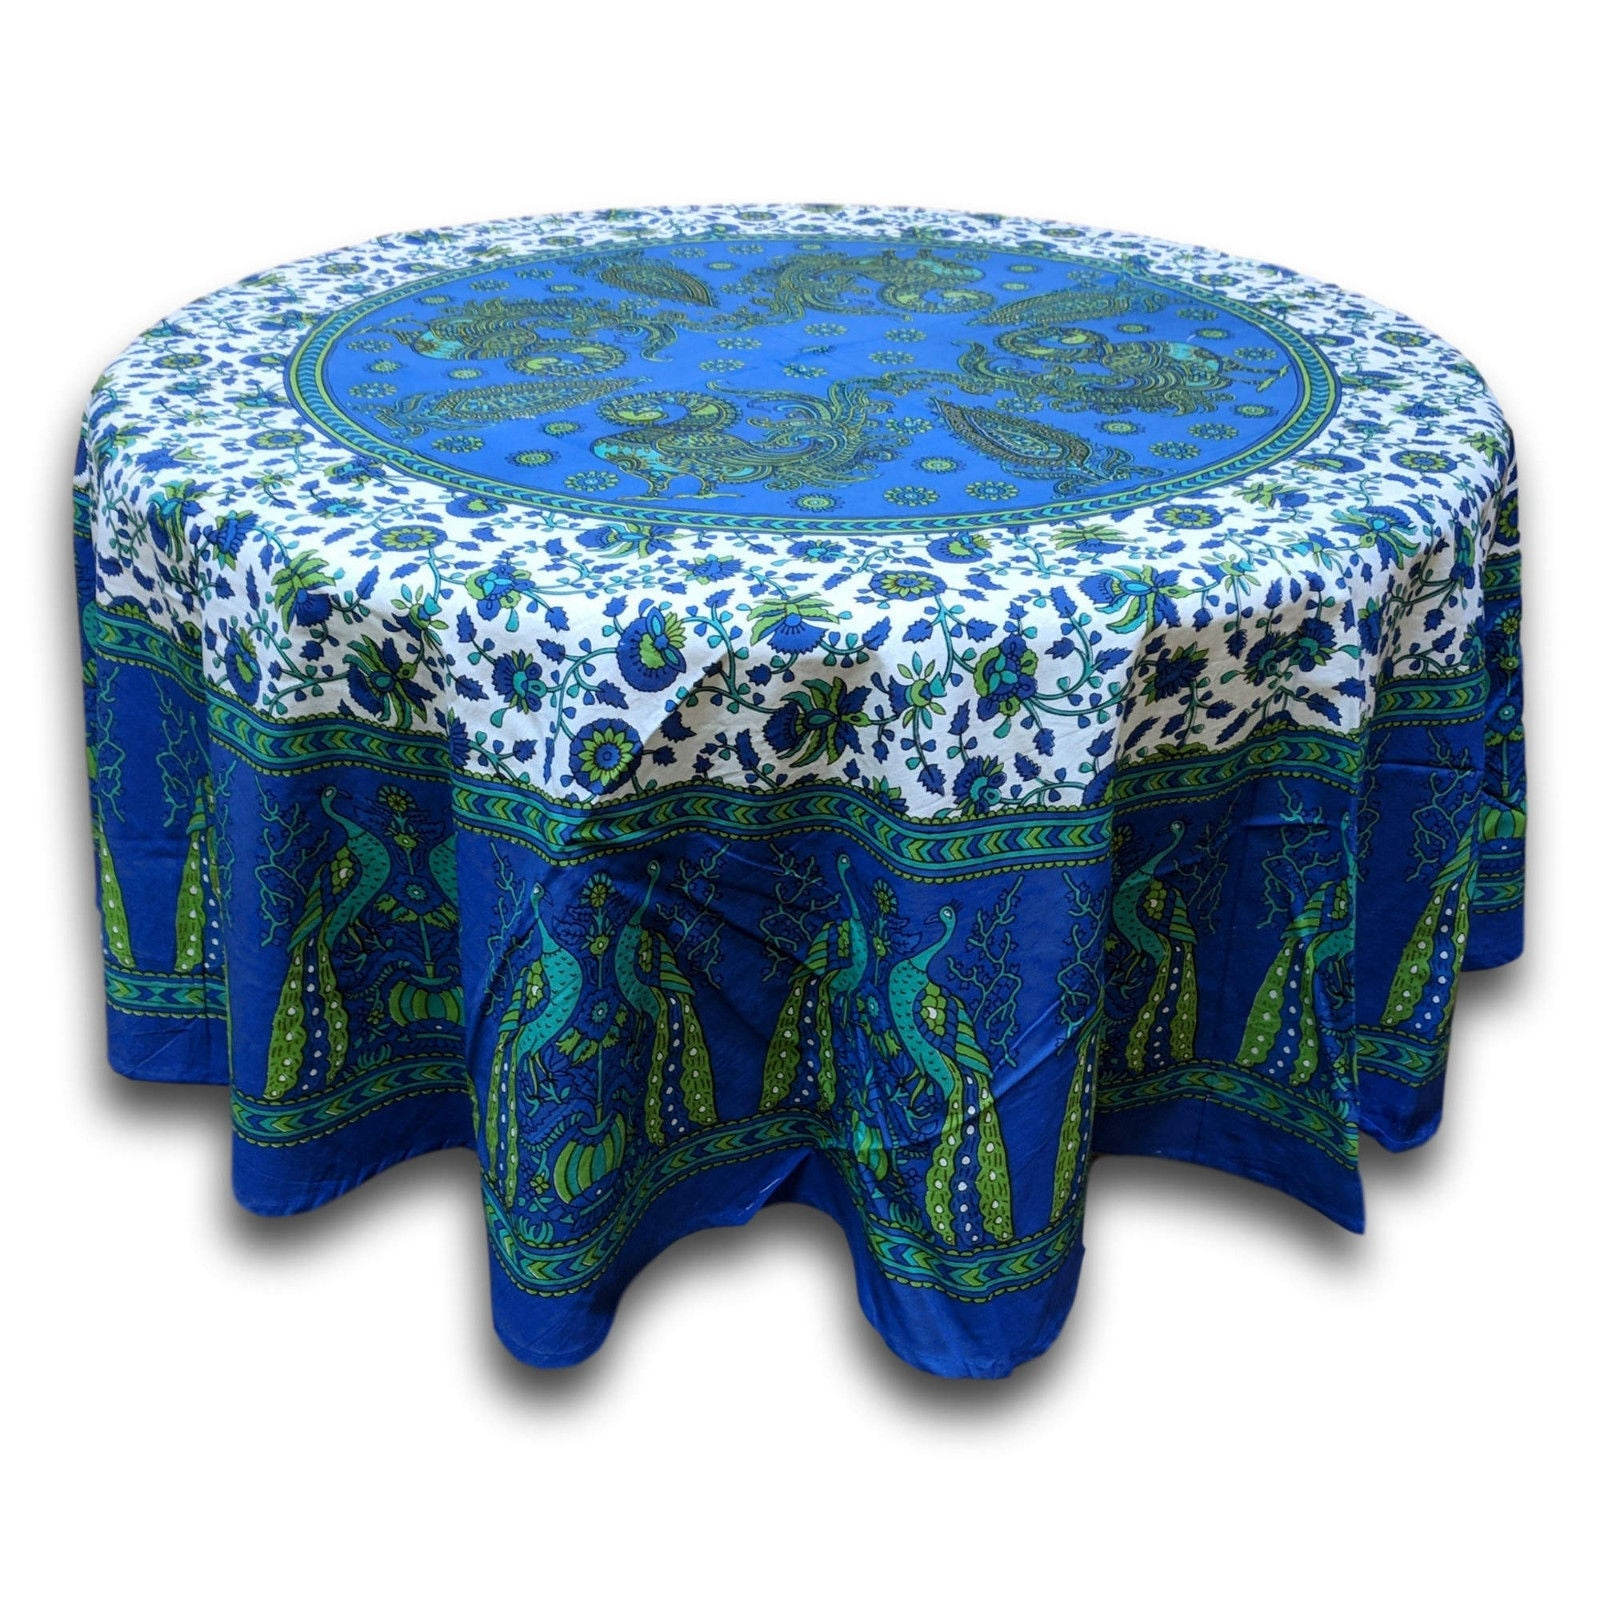 Cotton Peacock Floral Tablecloth Round Blue Green Red Tan - 72 Inches - Thumbnail 1